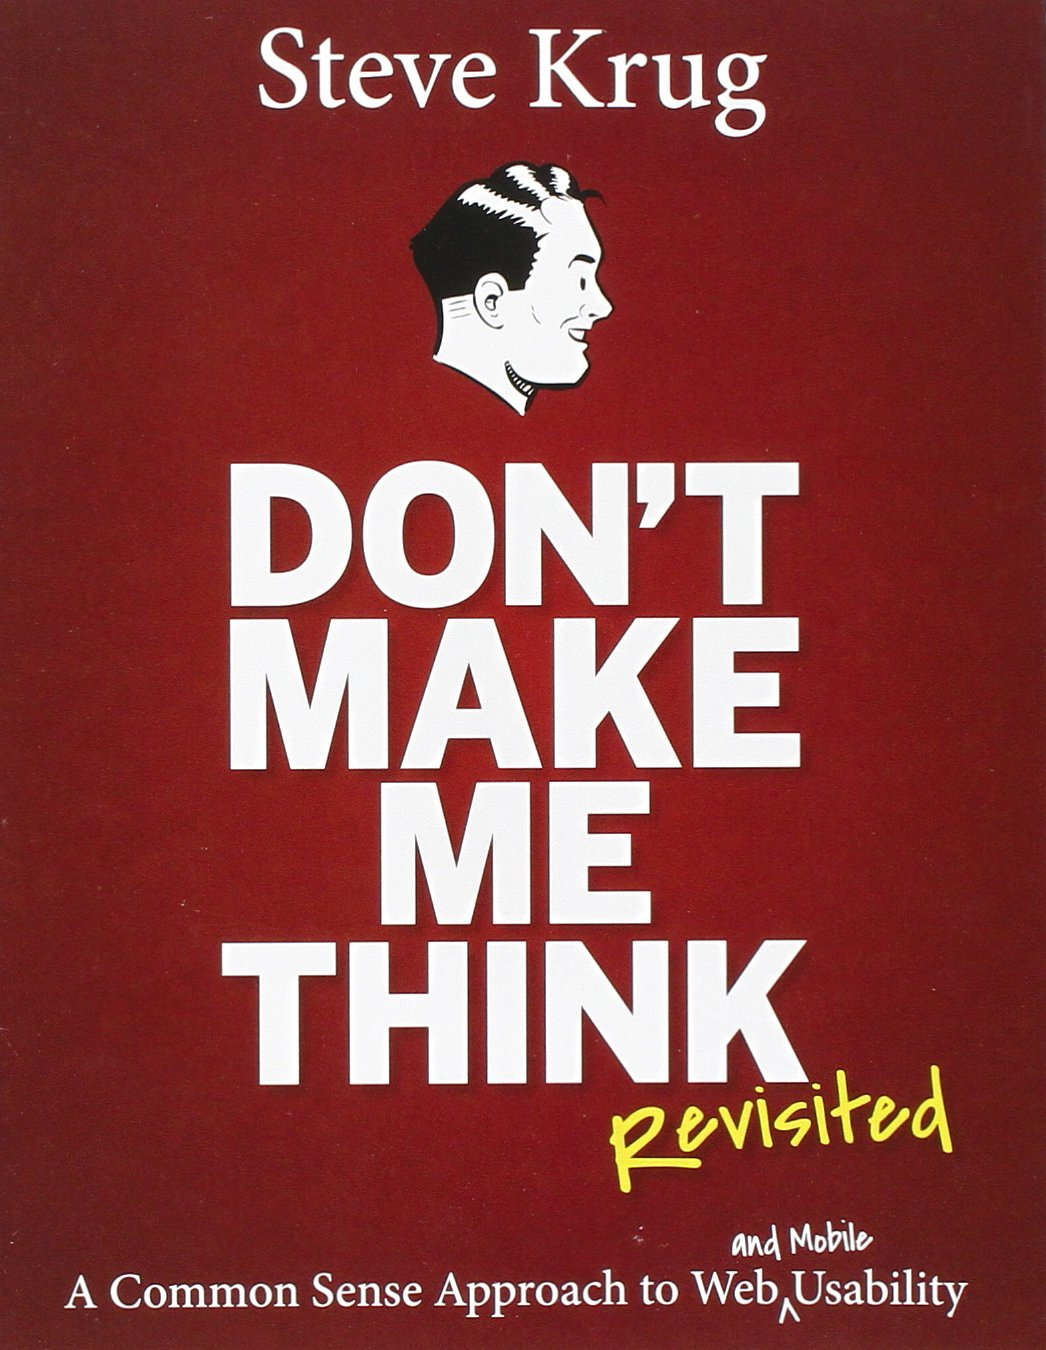 Cover of Steve Krug's book Don't Make Me Think Revisited.